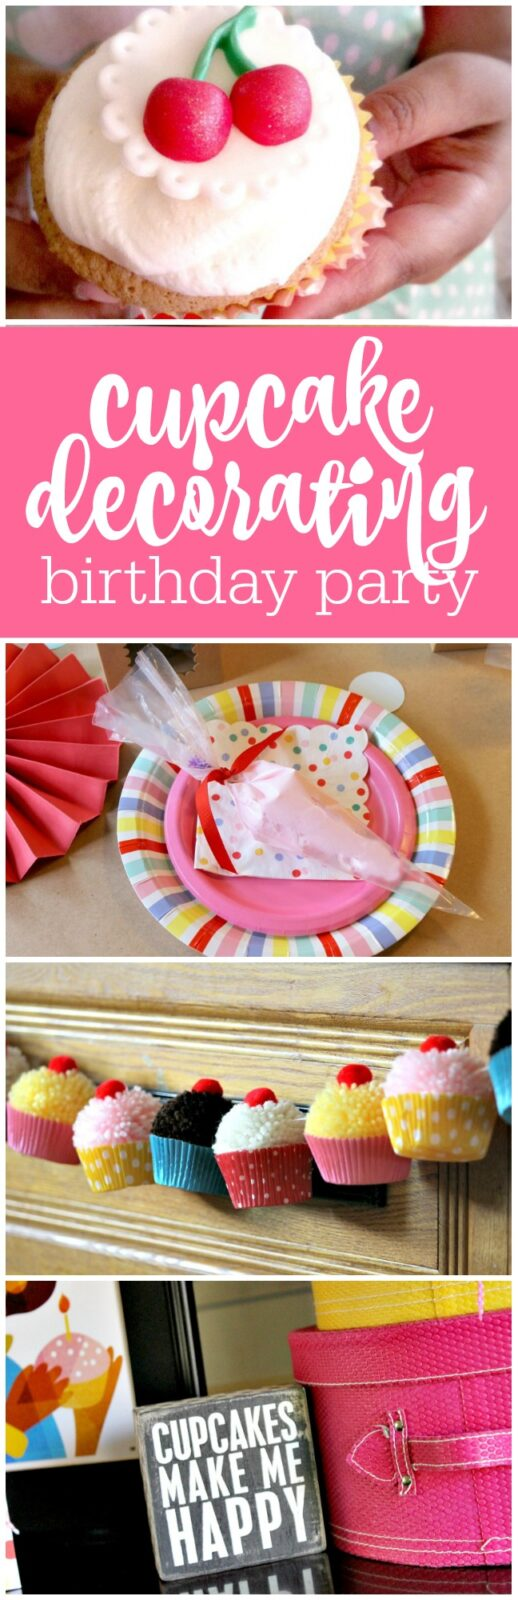 Cupcake decorating birthday party by Cupcake Wishes & Birthday Dreams featured on The Party Teacher